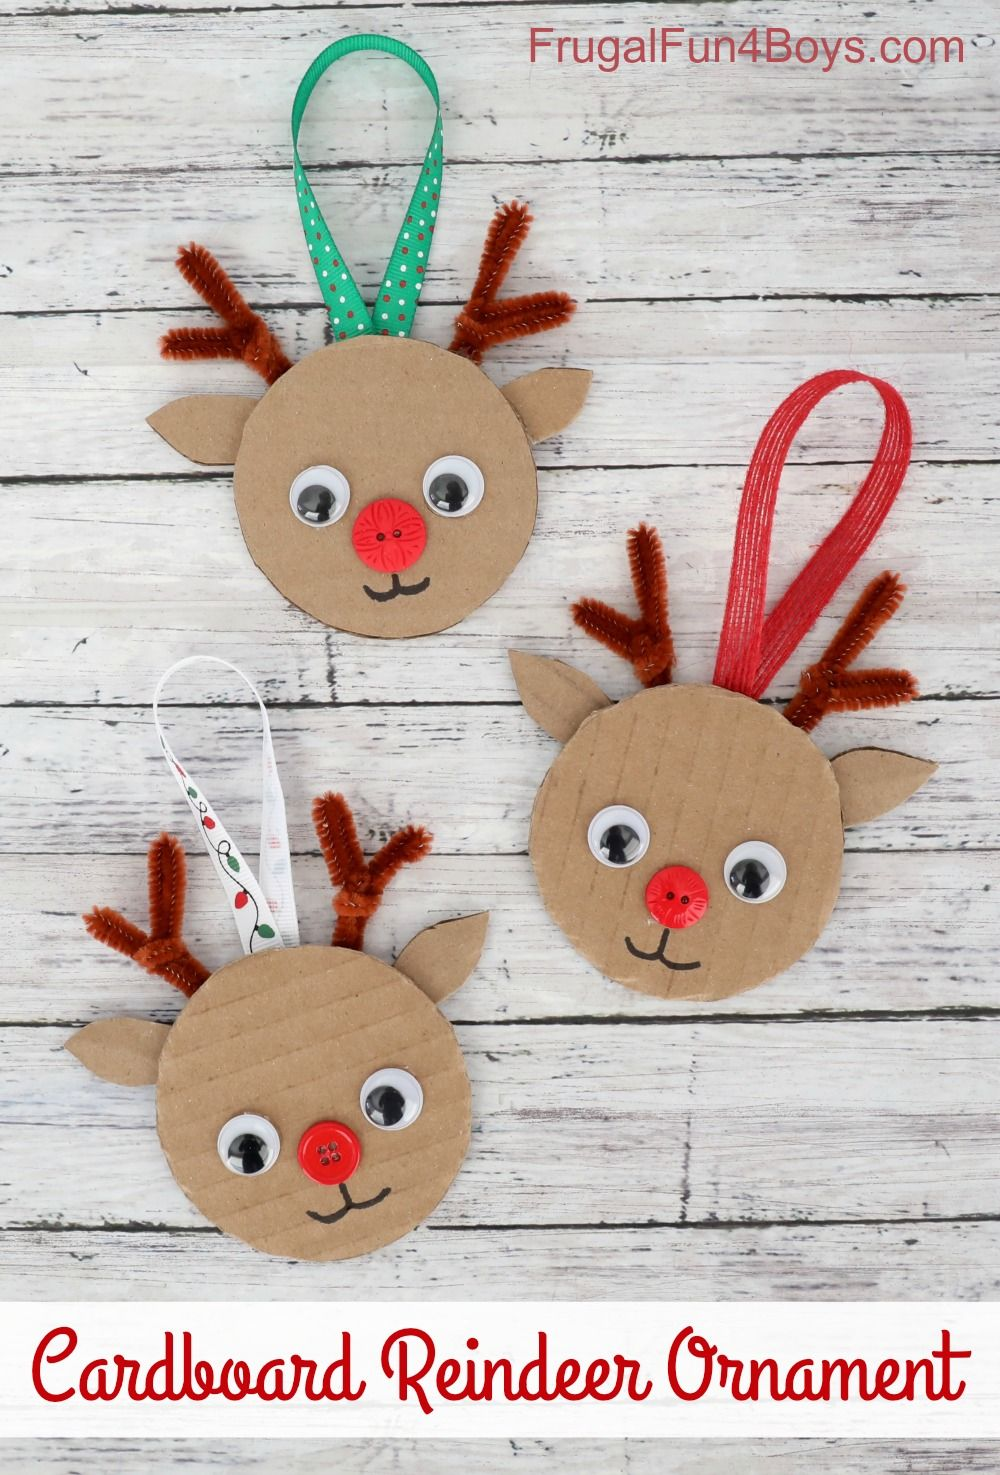 Cardboard Reindeer Ornament Christmas Craft for Kids - Frugal Fun For Boys and Girls